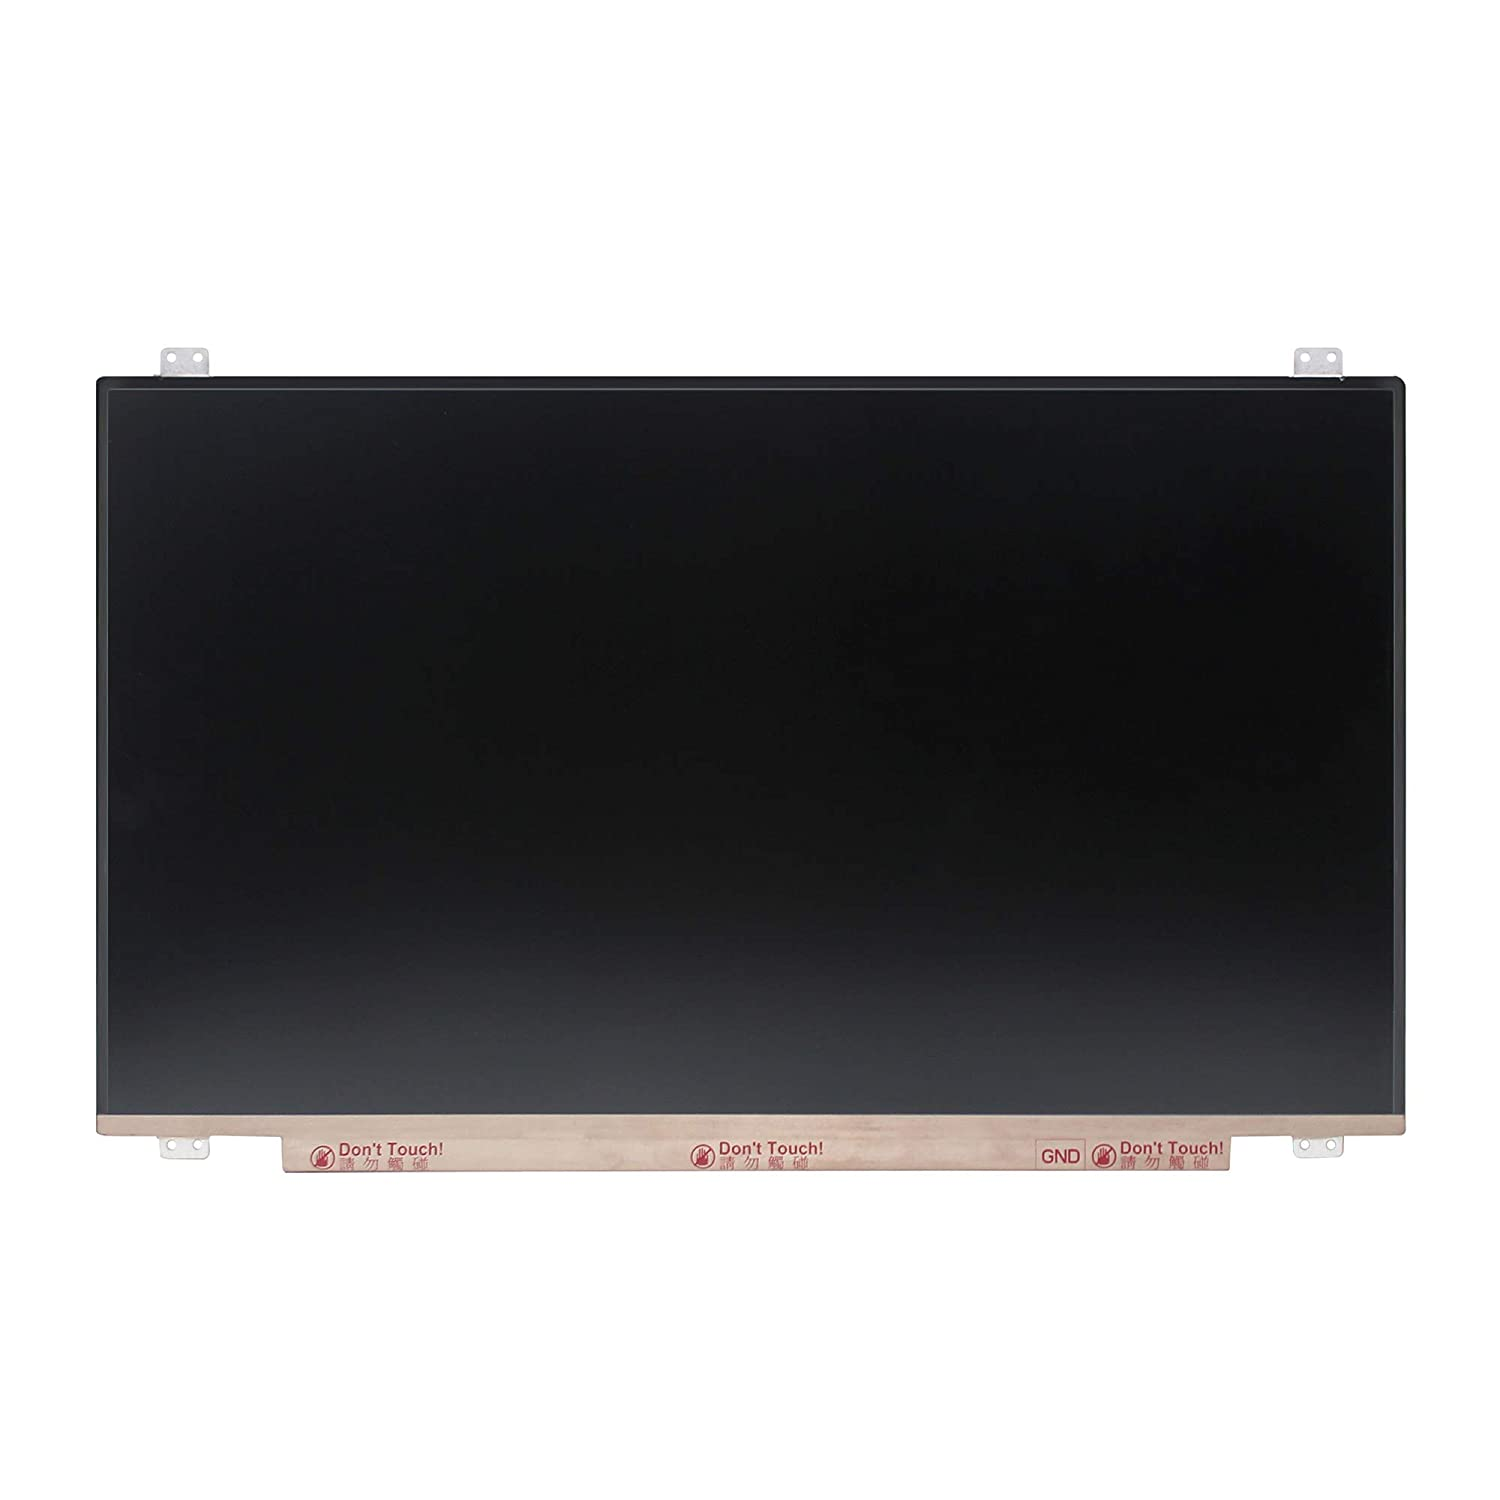 LCDOLED Compatible 17.3 inch 144Hz FullHD 1920x1080 IPS LCD Display Screen Panel Replacement for MSI GS75 STEALTH-204 STEALTH-203 STEALTH-249 STEALTH-248 STEALTH-202 STEALTH-247